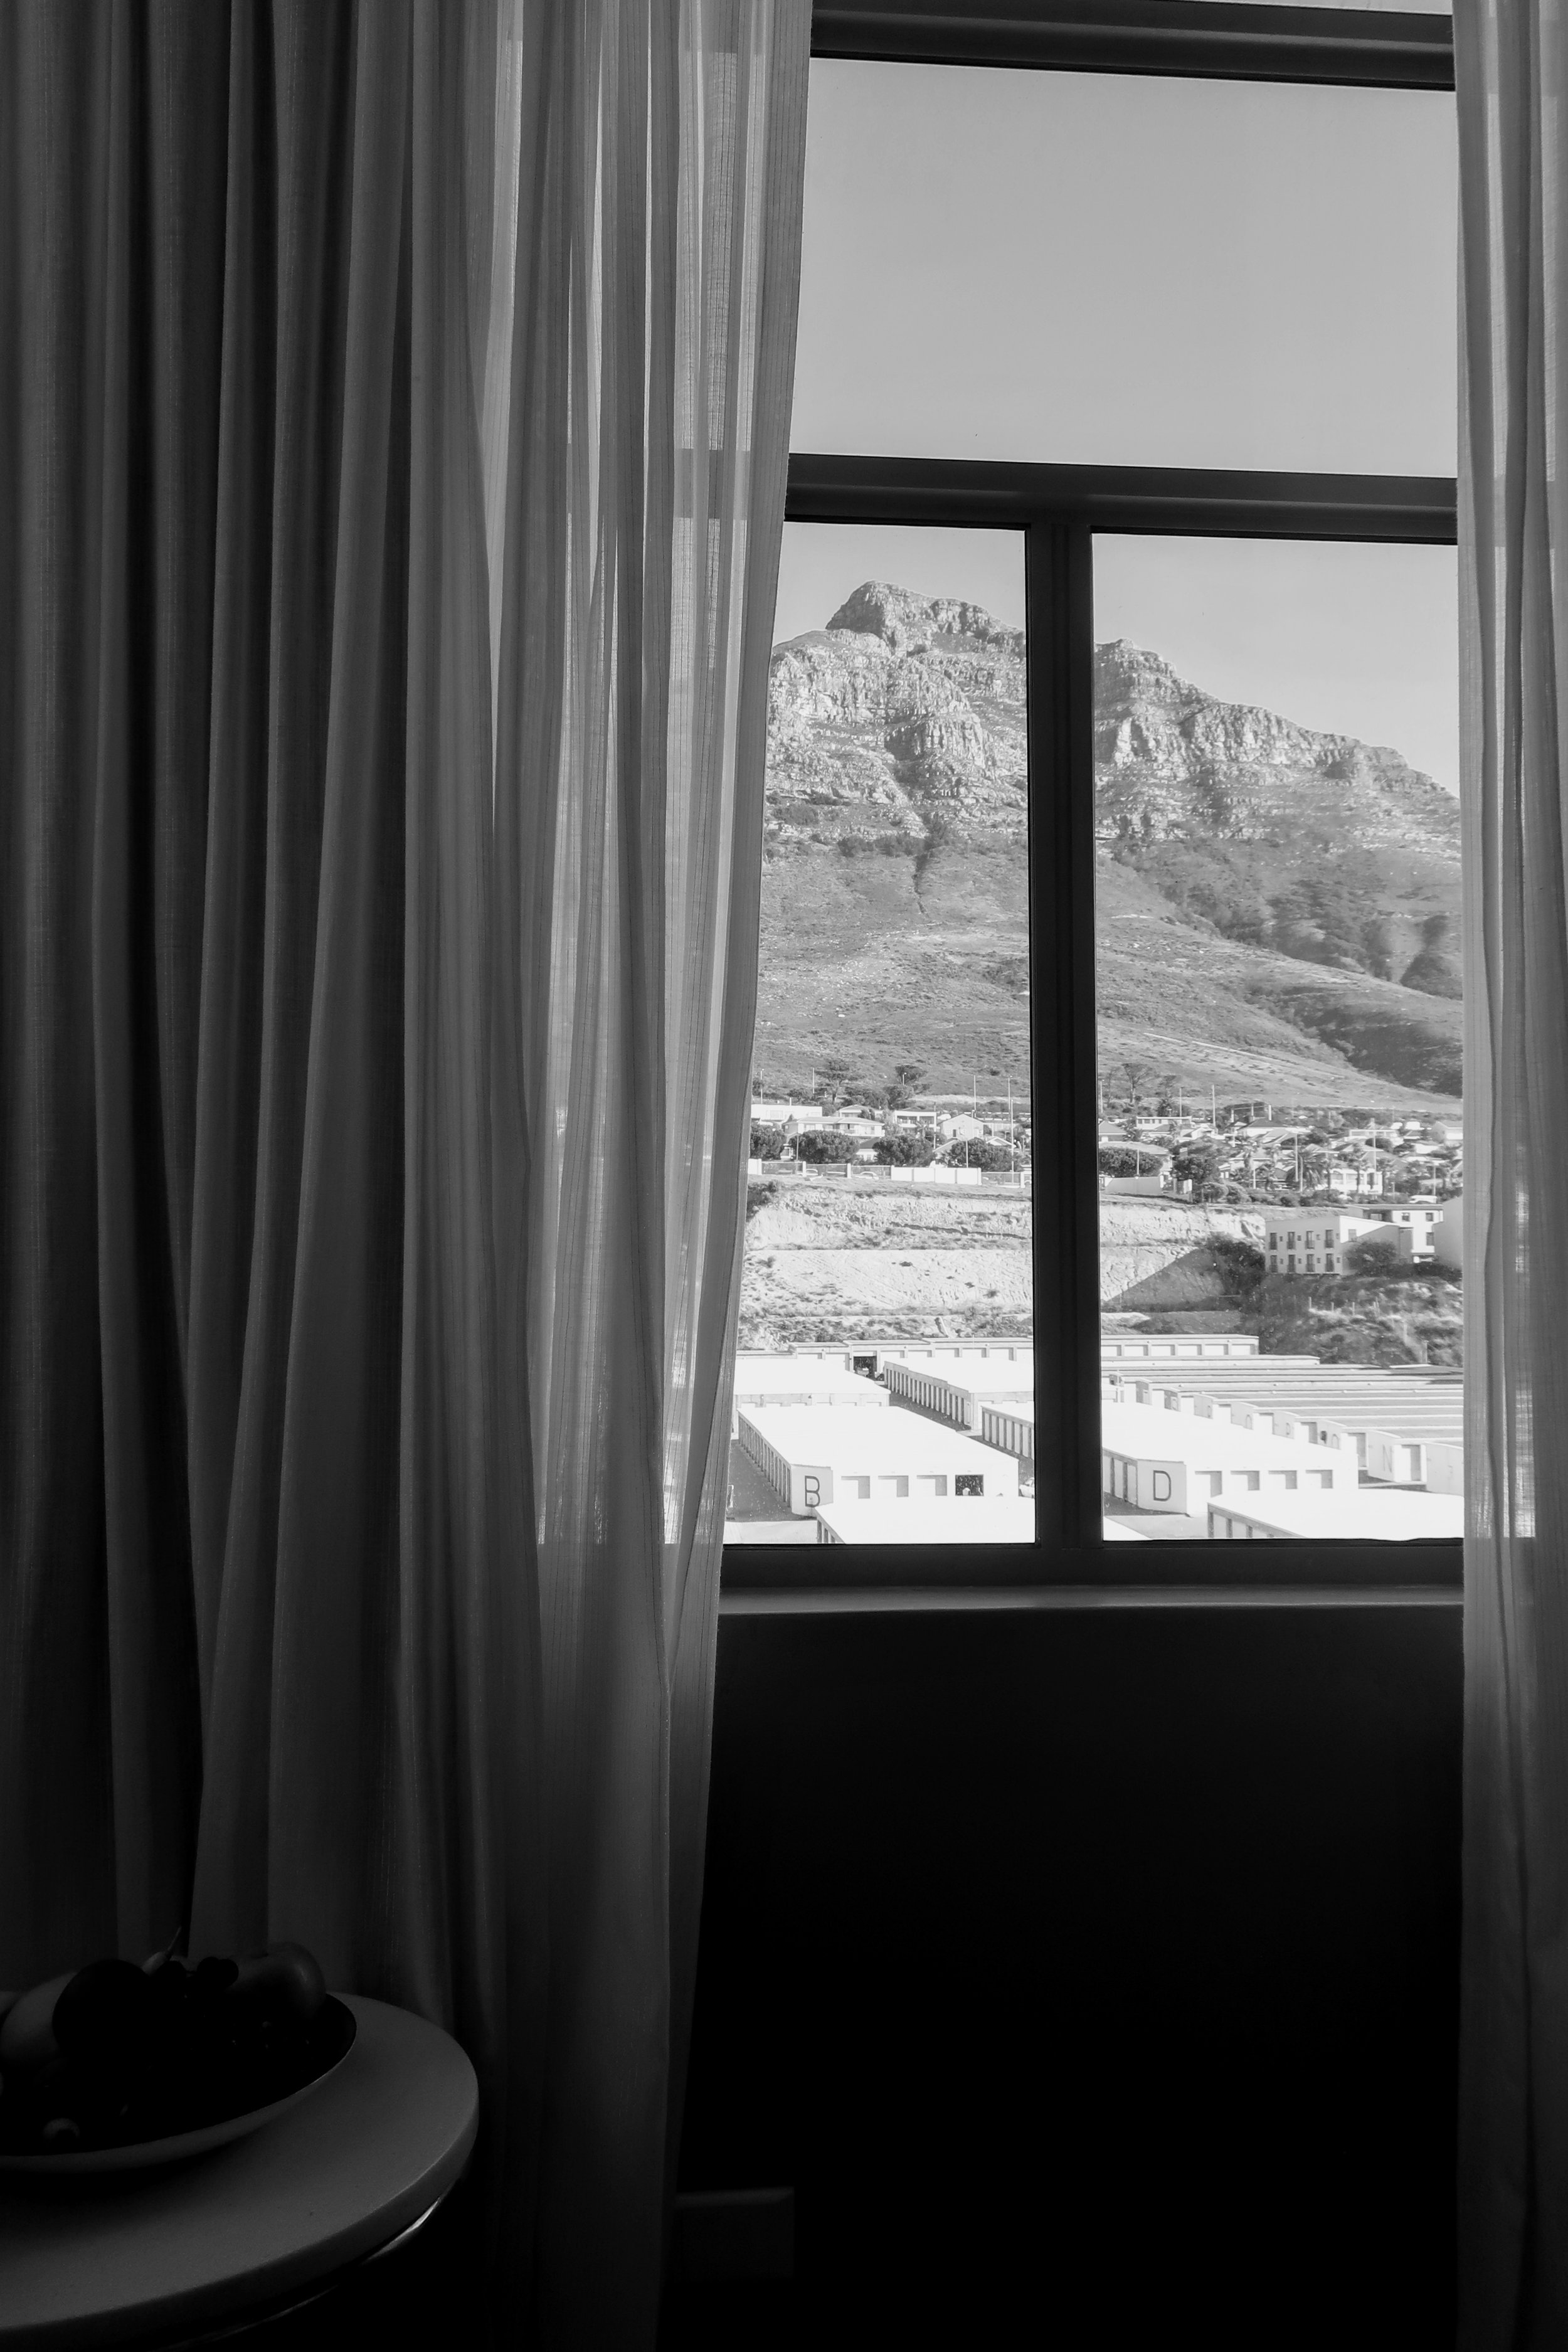 Waking up to this impressive view of Devil's Peak.